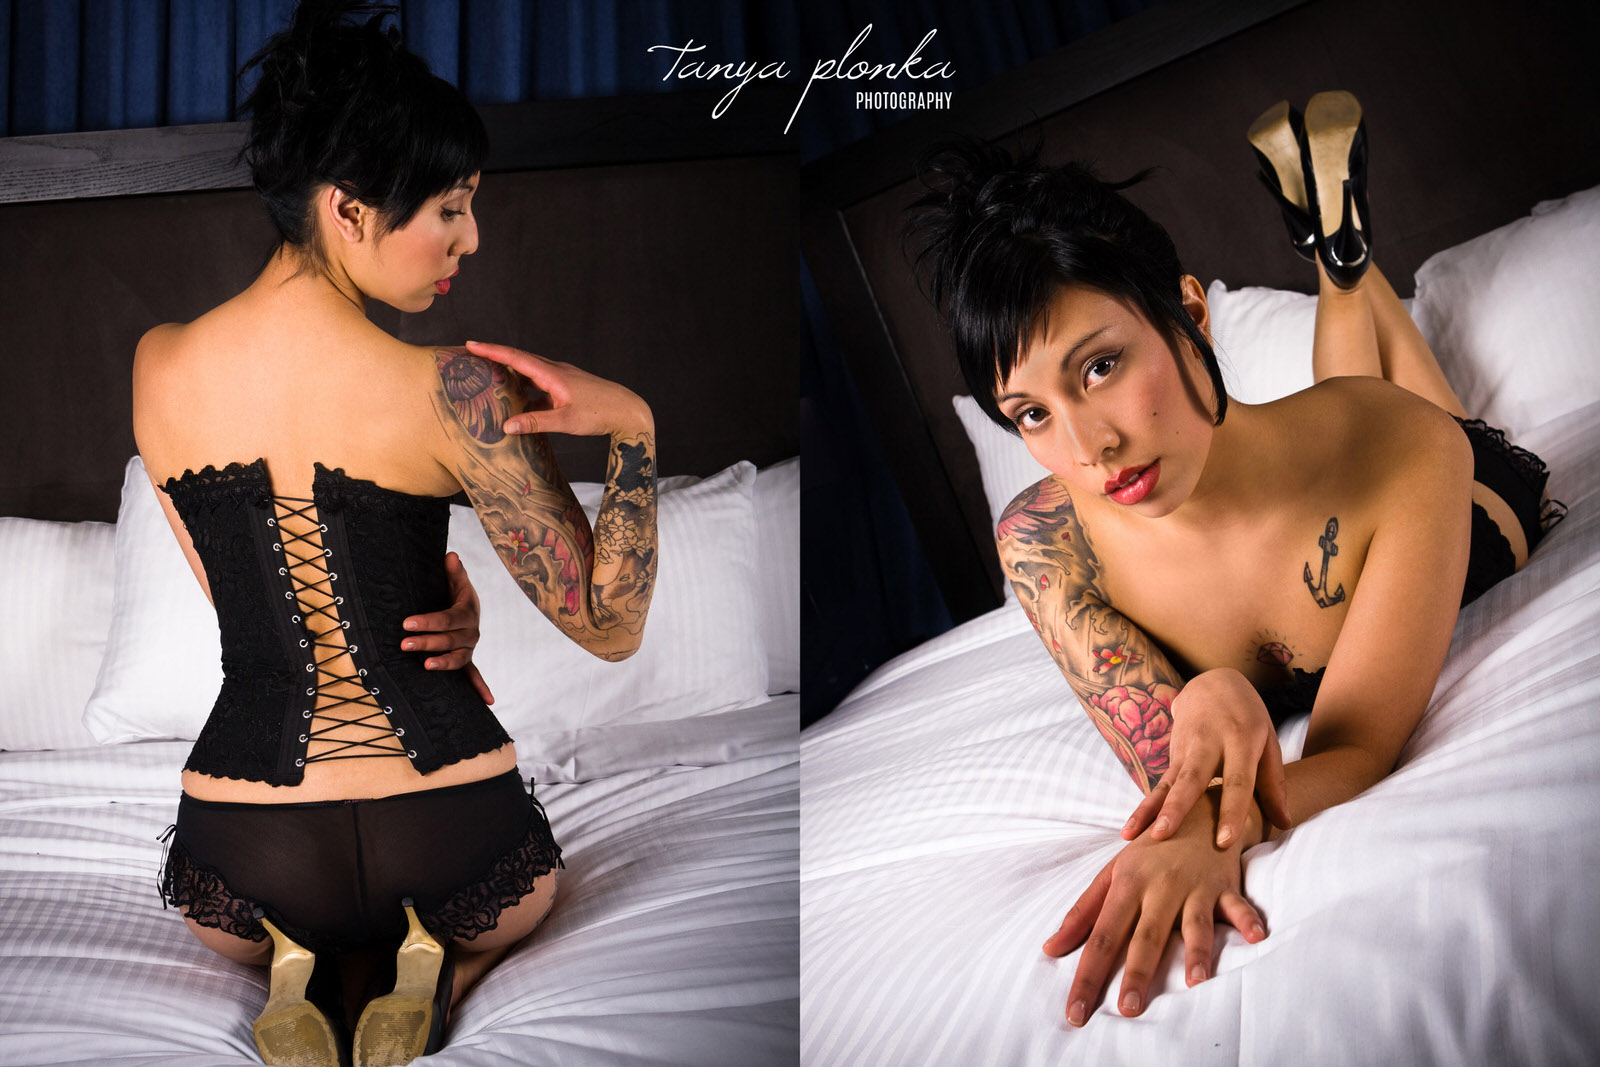 woman with tattoos and black corset sits on hotel room bed